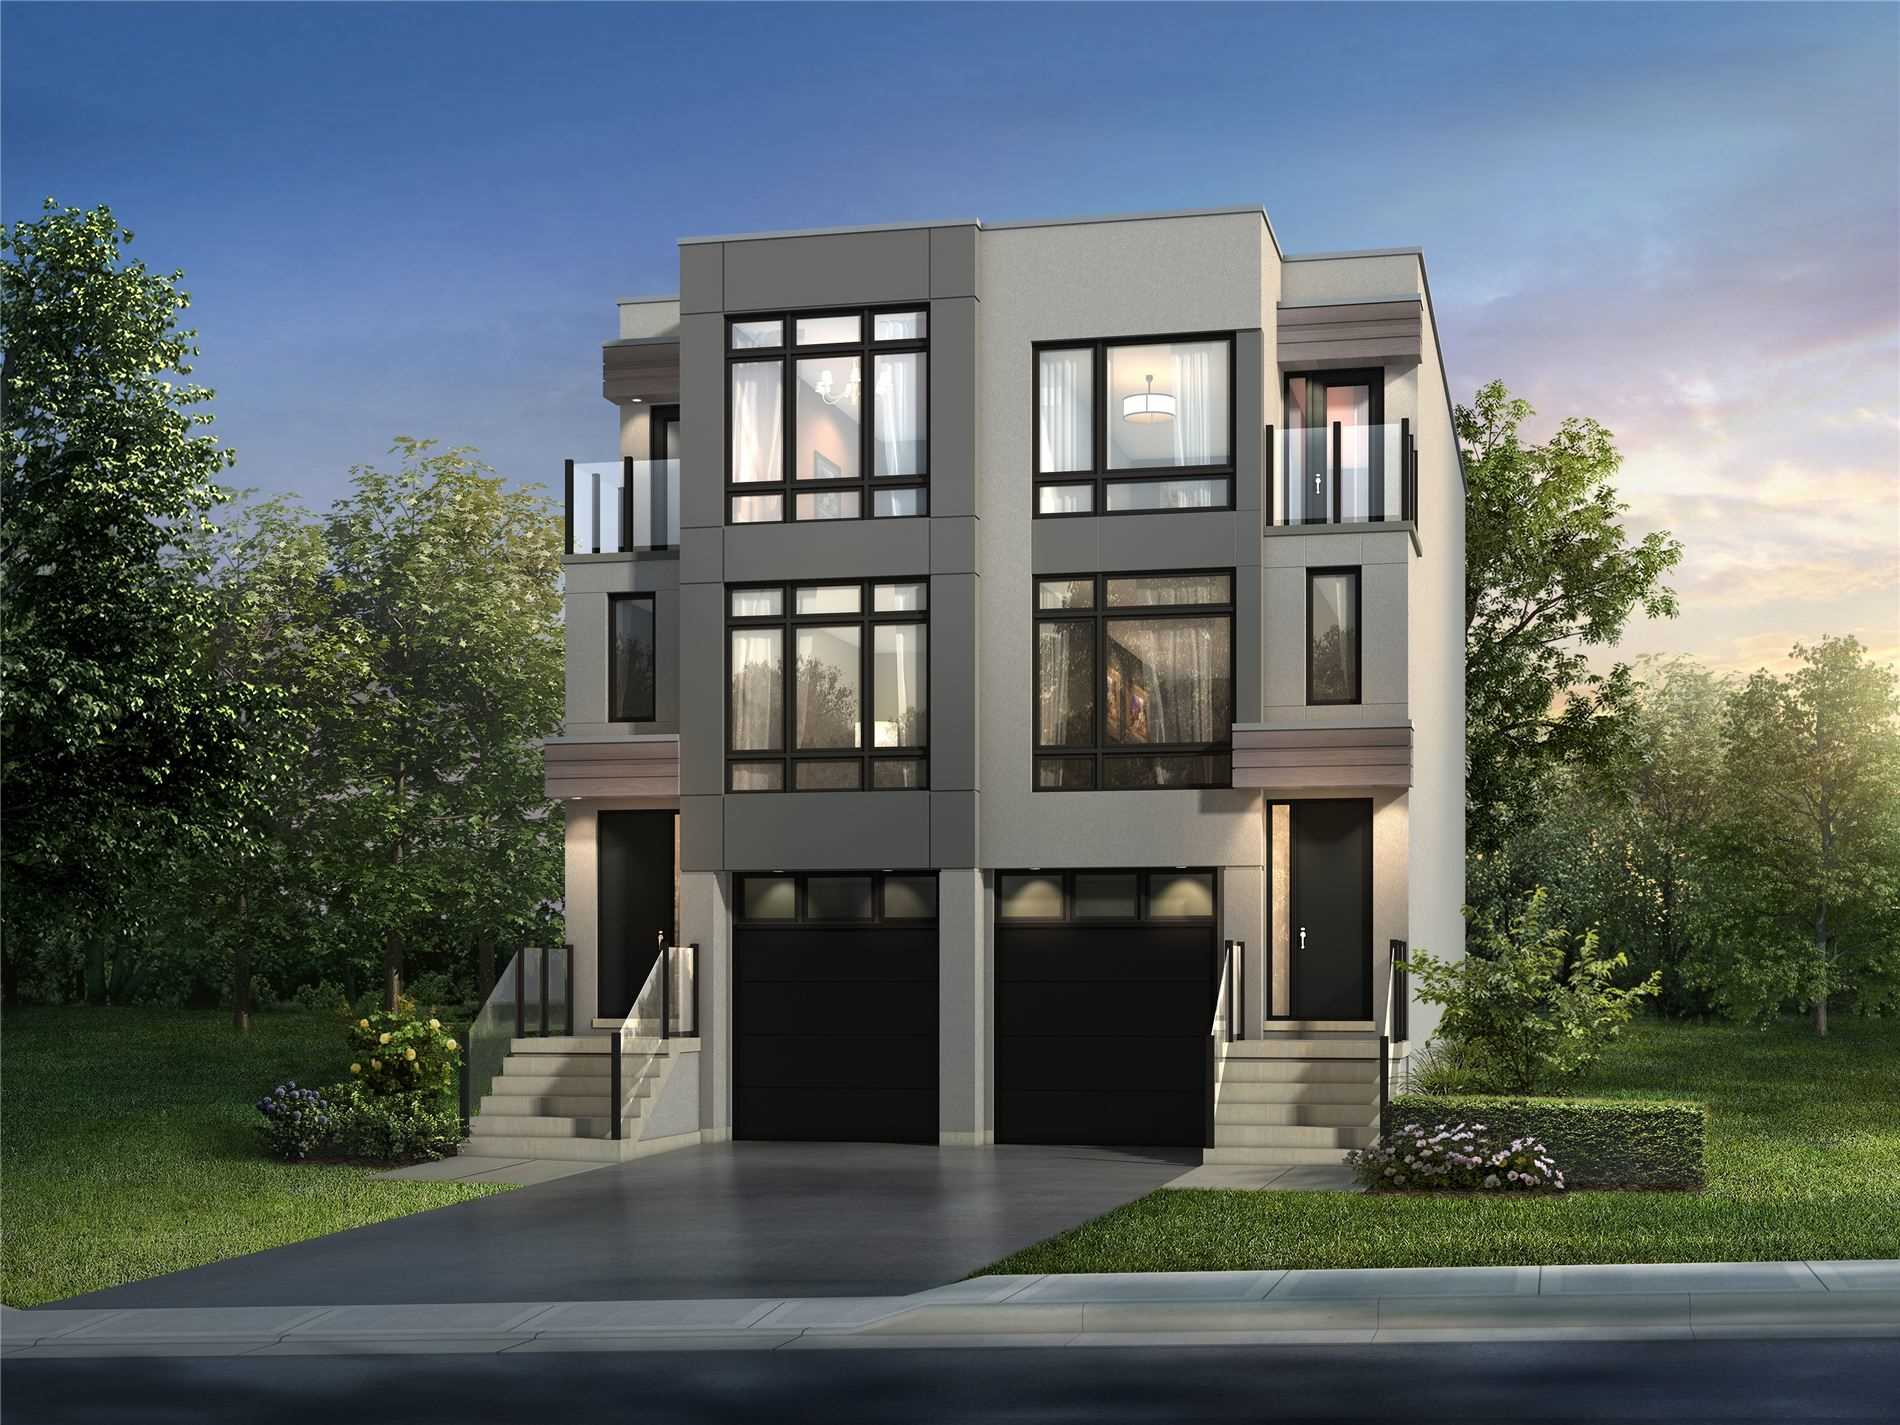 56 Holmesdale Rd, Toronto, Ontario M6E1Y1, 3 Bedrooms Bedrooms, 8 Rooms Rooms,4 BathroomsBathrooms,Semi-detached,For Sale,Holmesdale,W5161547